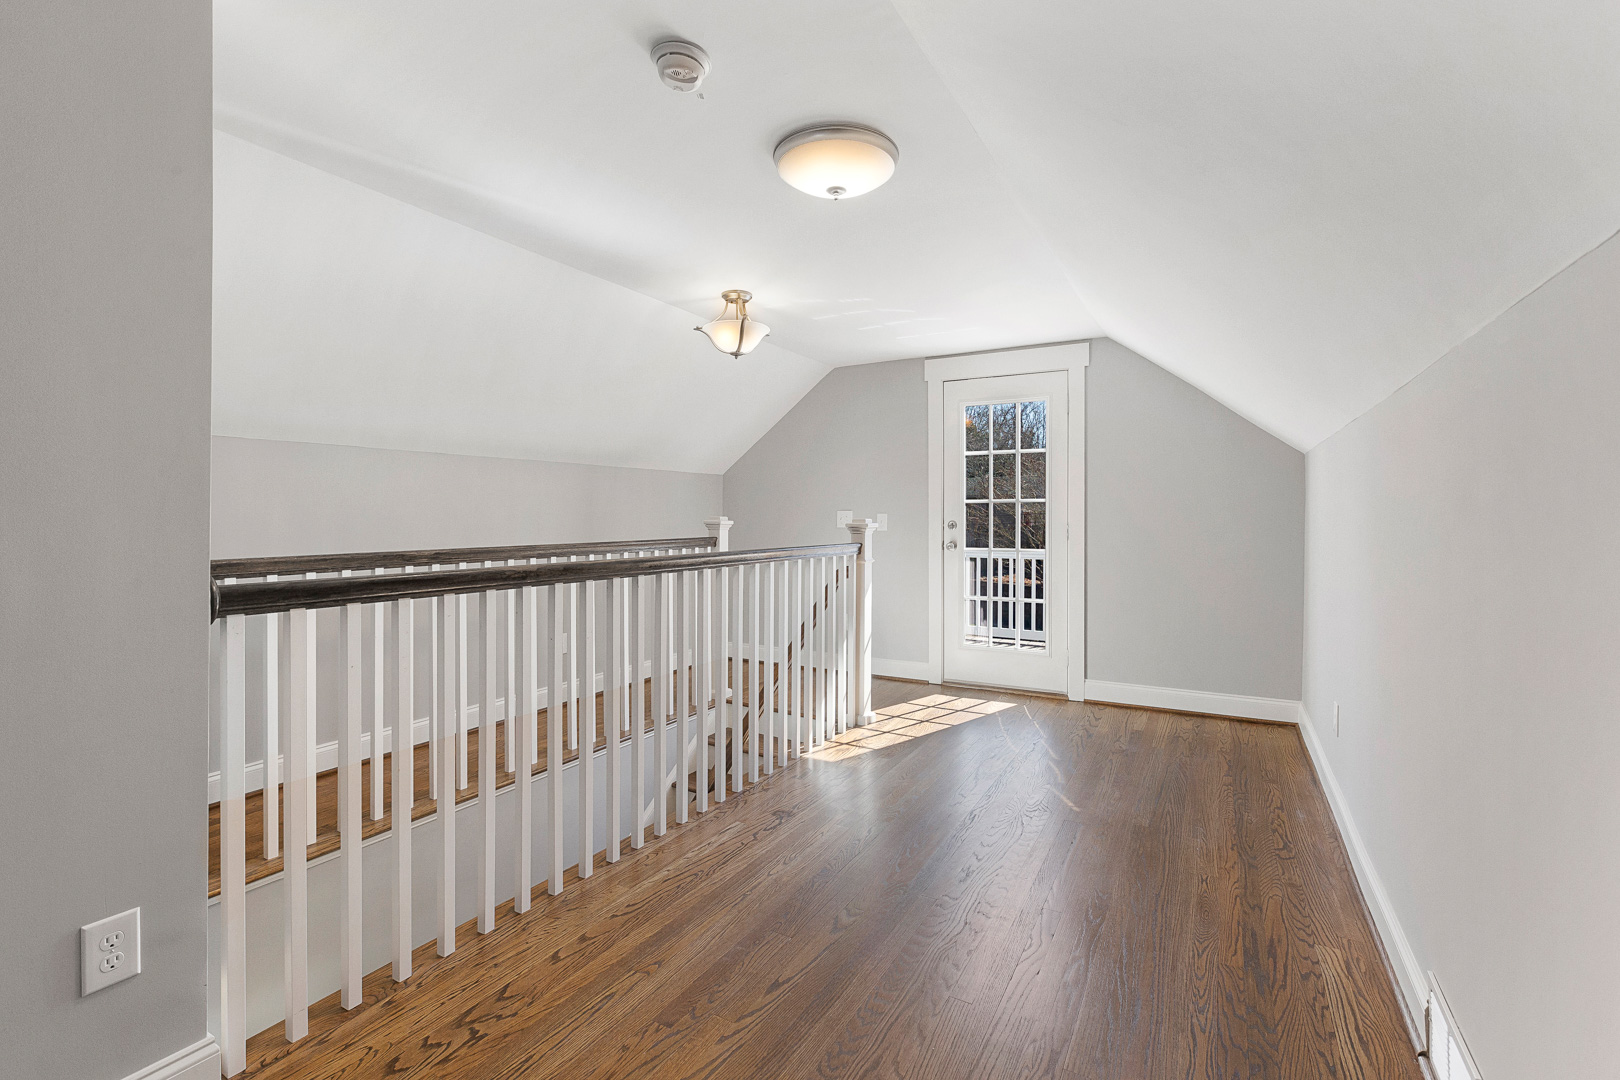 Second floor landing with access to balcony